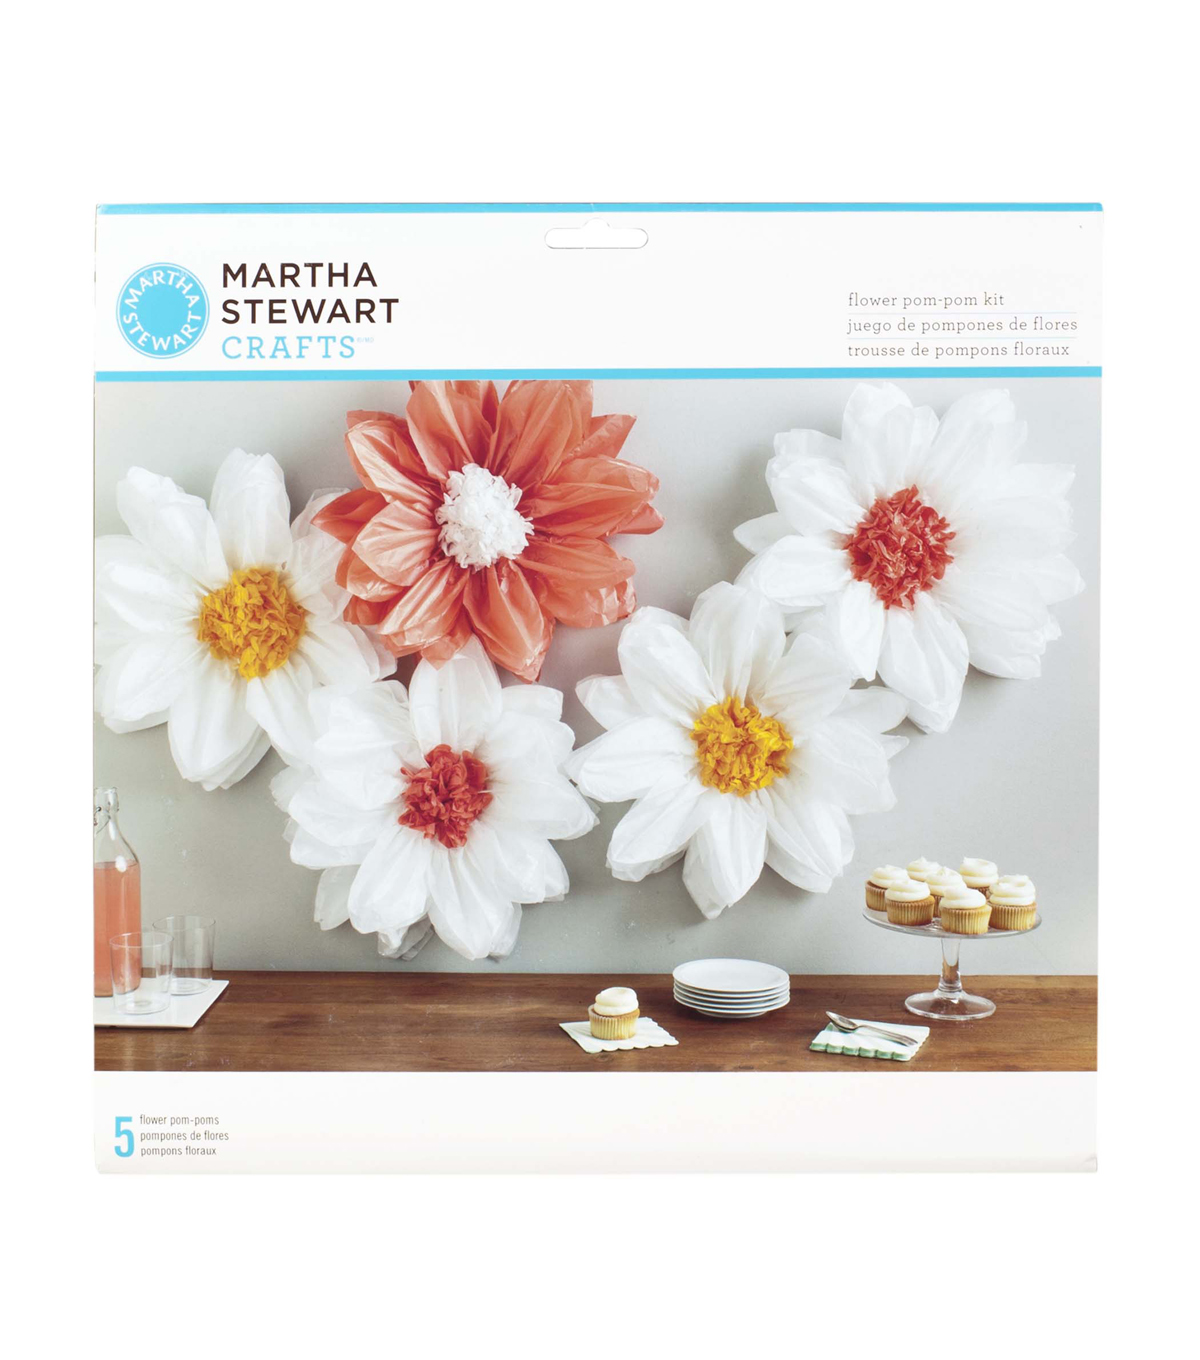 Martha stewart tissue paper flower kit boatremyeaton martha stewart tissue paper flower kit mightylinksfo